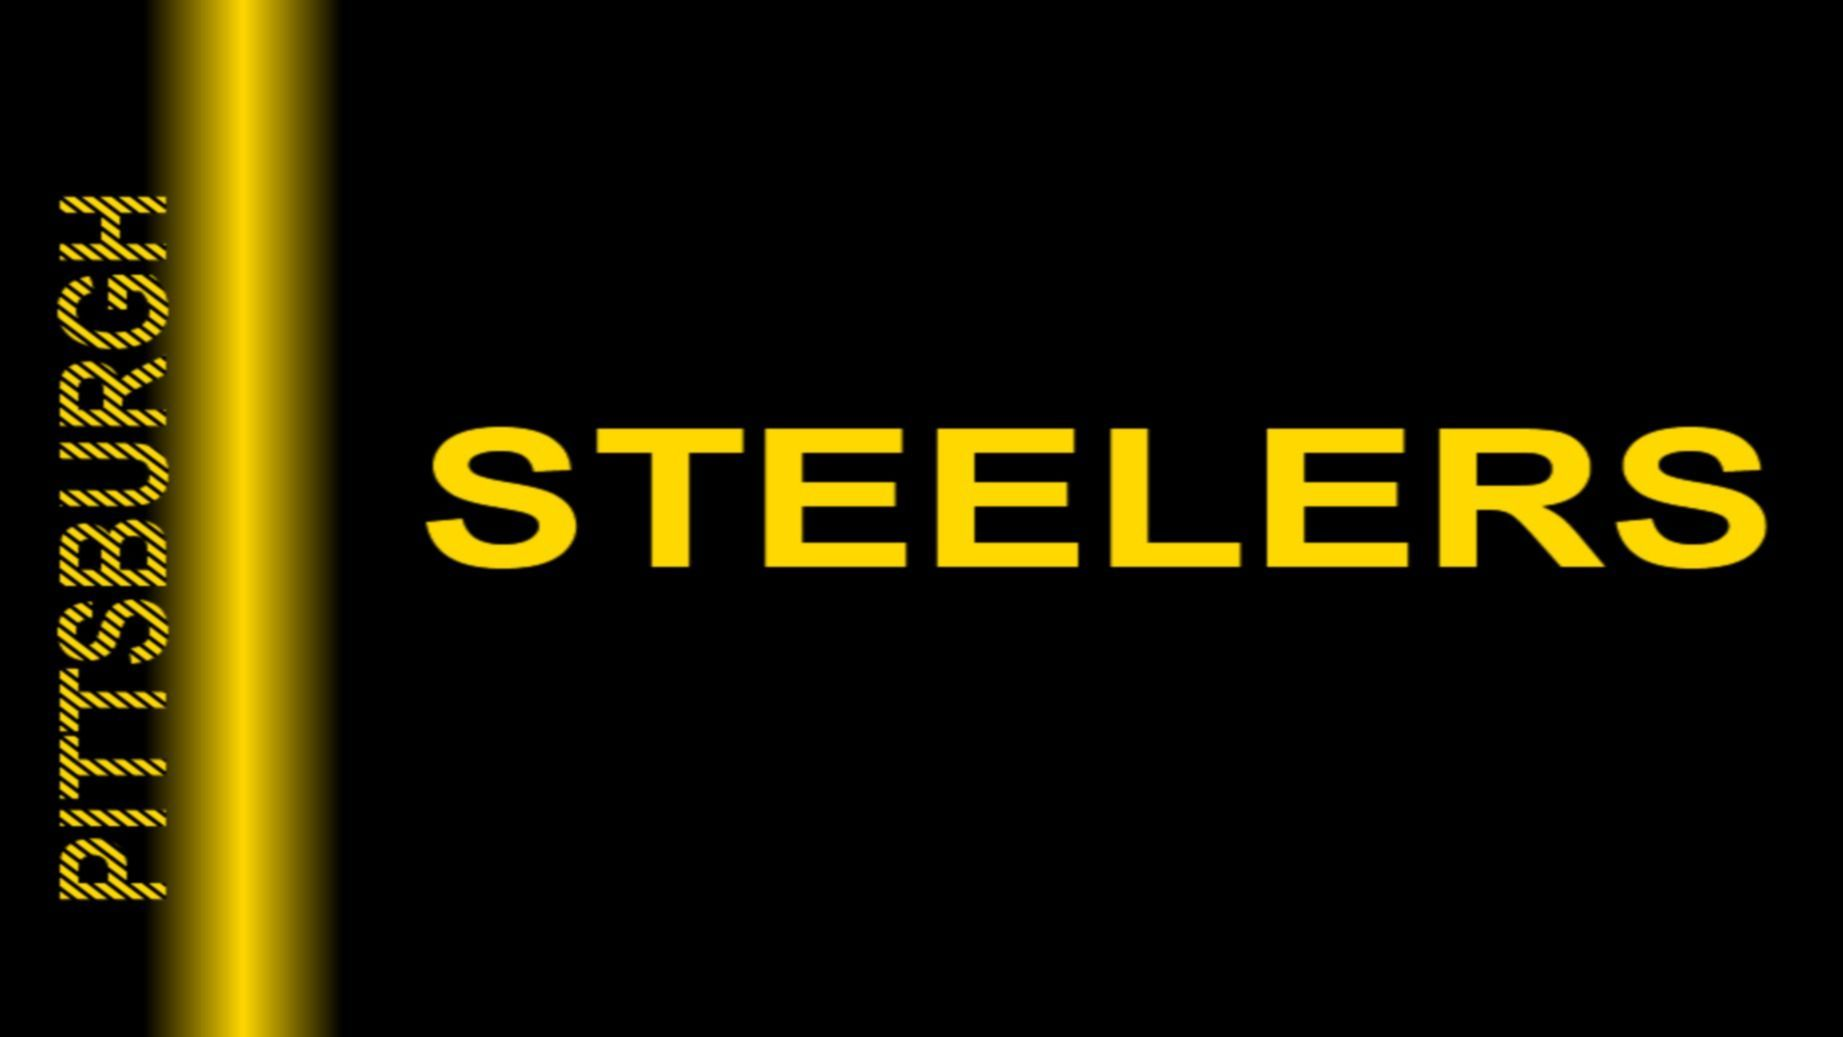 1843x1037 - Steelers Desktop 3